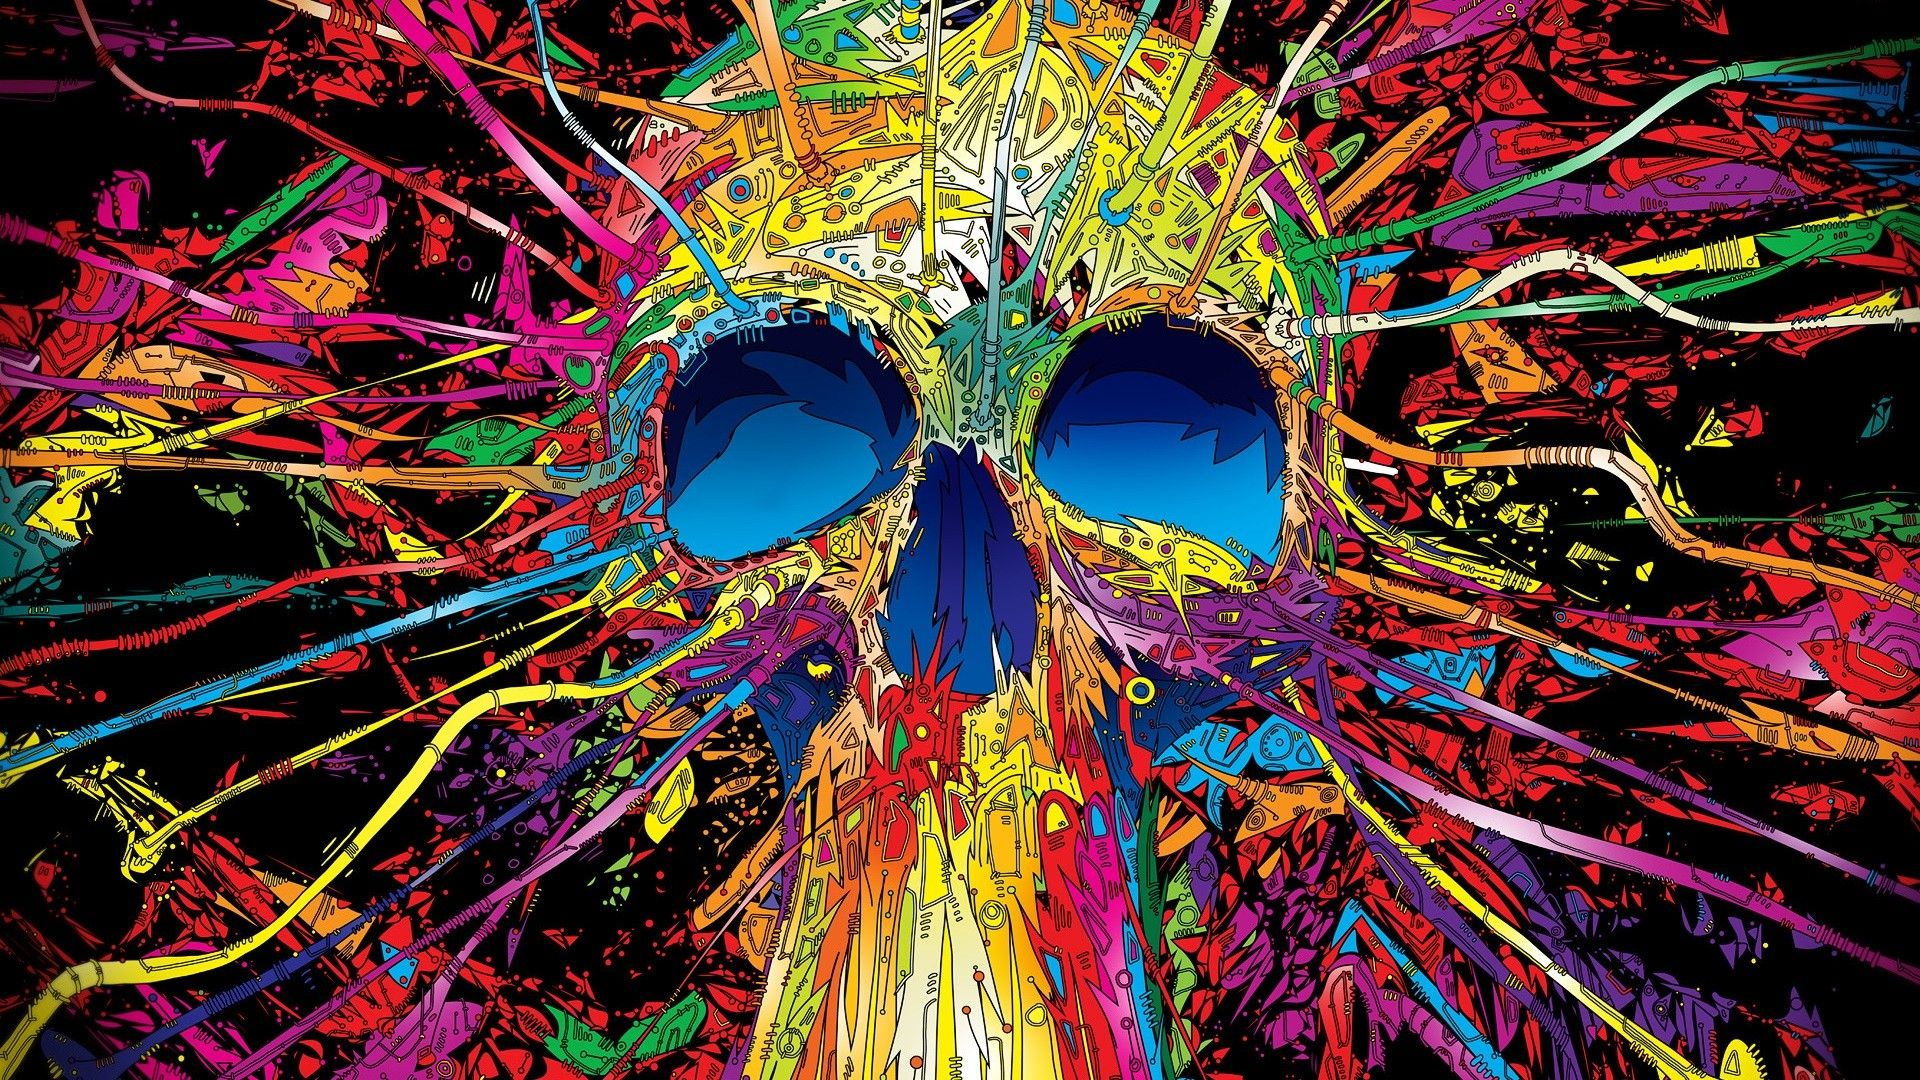 Art Desktop Backgrounds | deskbg.com | arts | Skull art, Skull wallpaper, Psychedelic Art